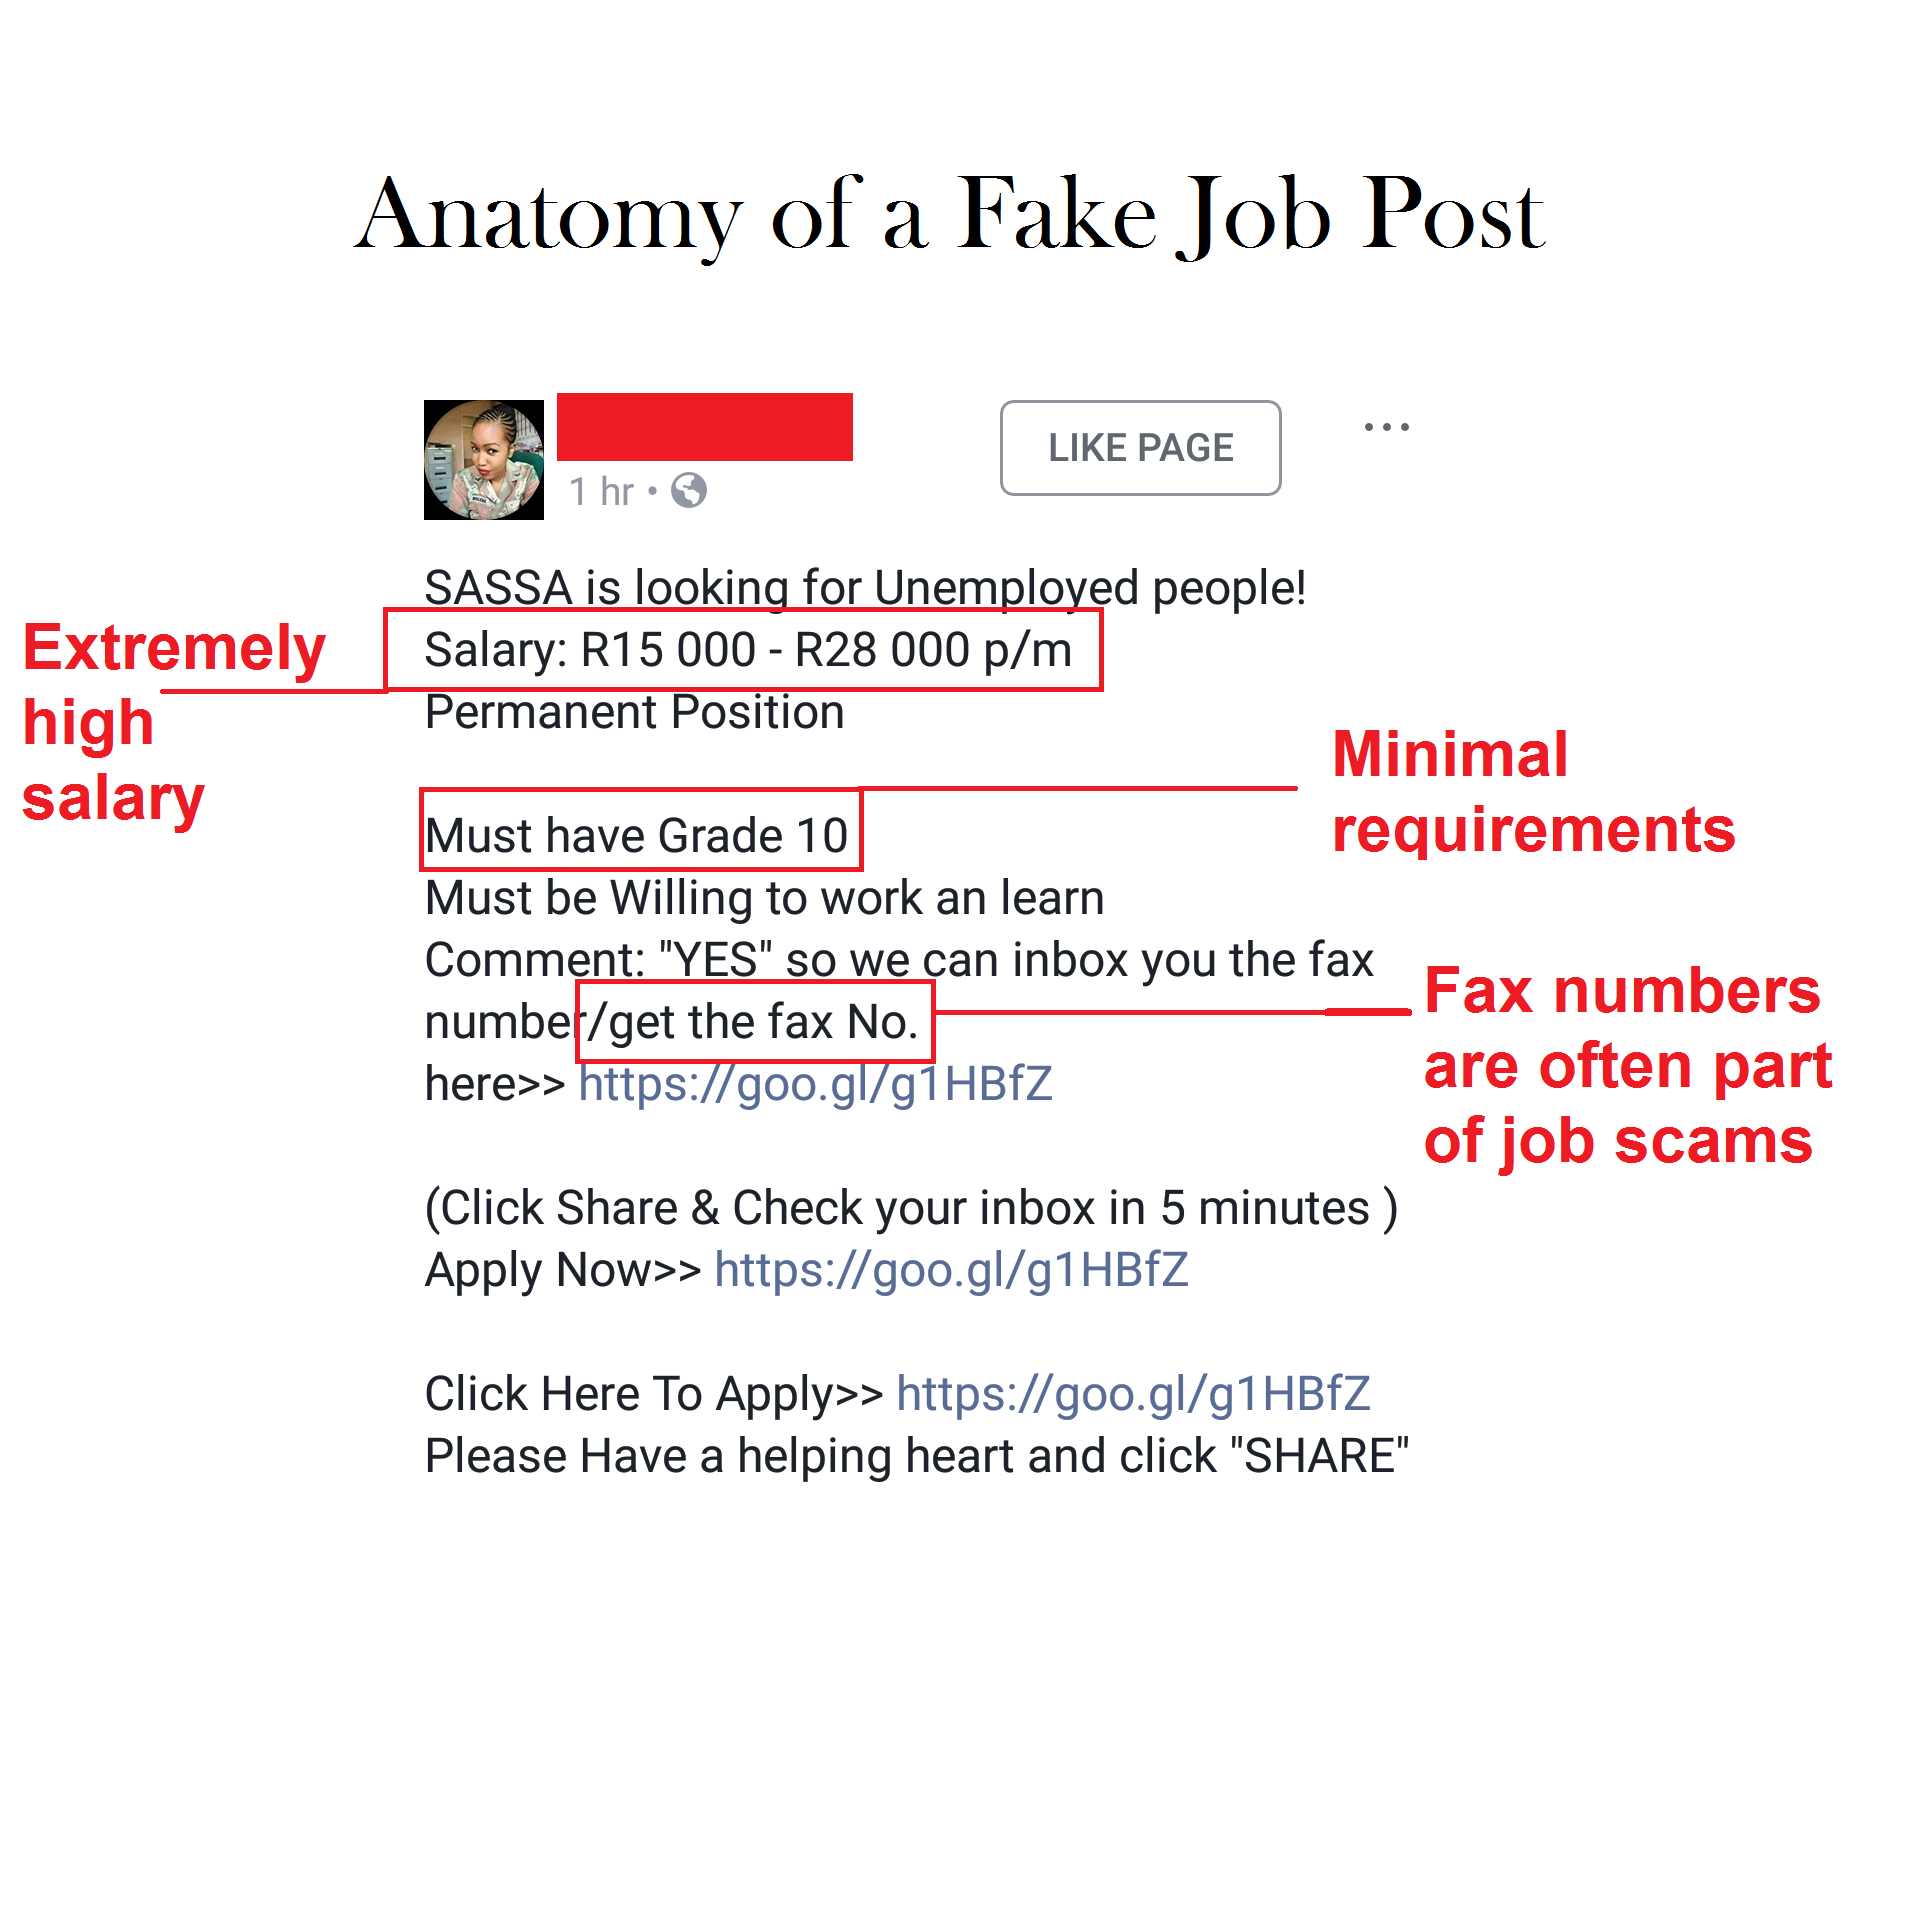 How to Spot a Fake Job Post